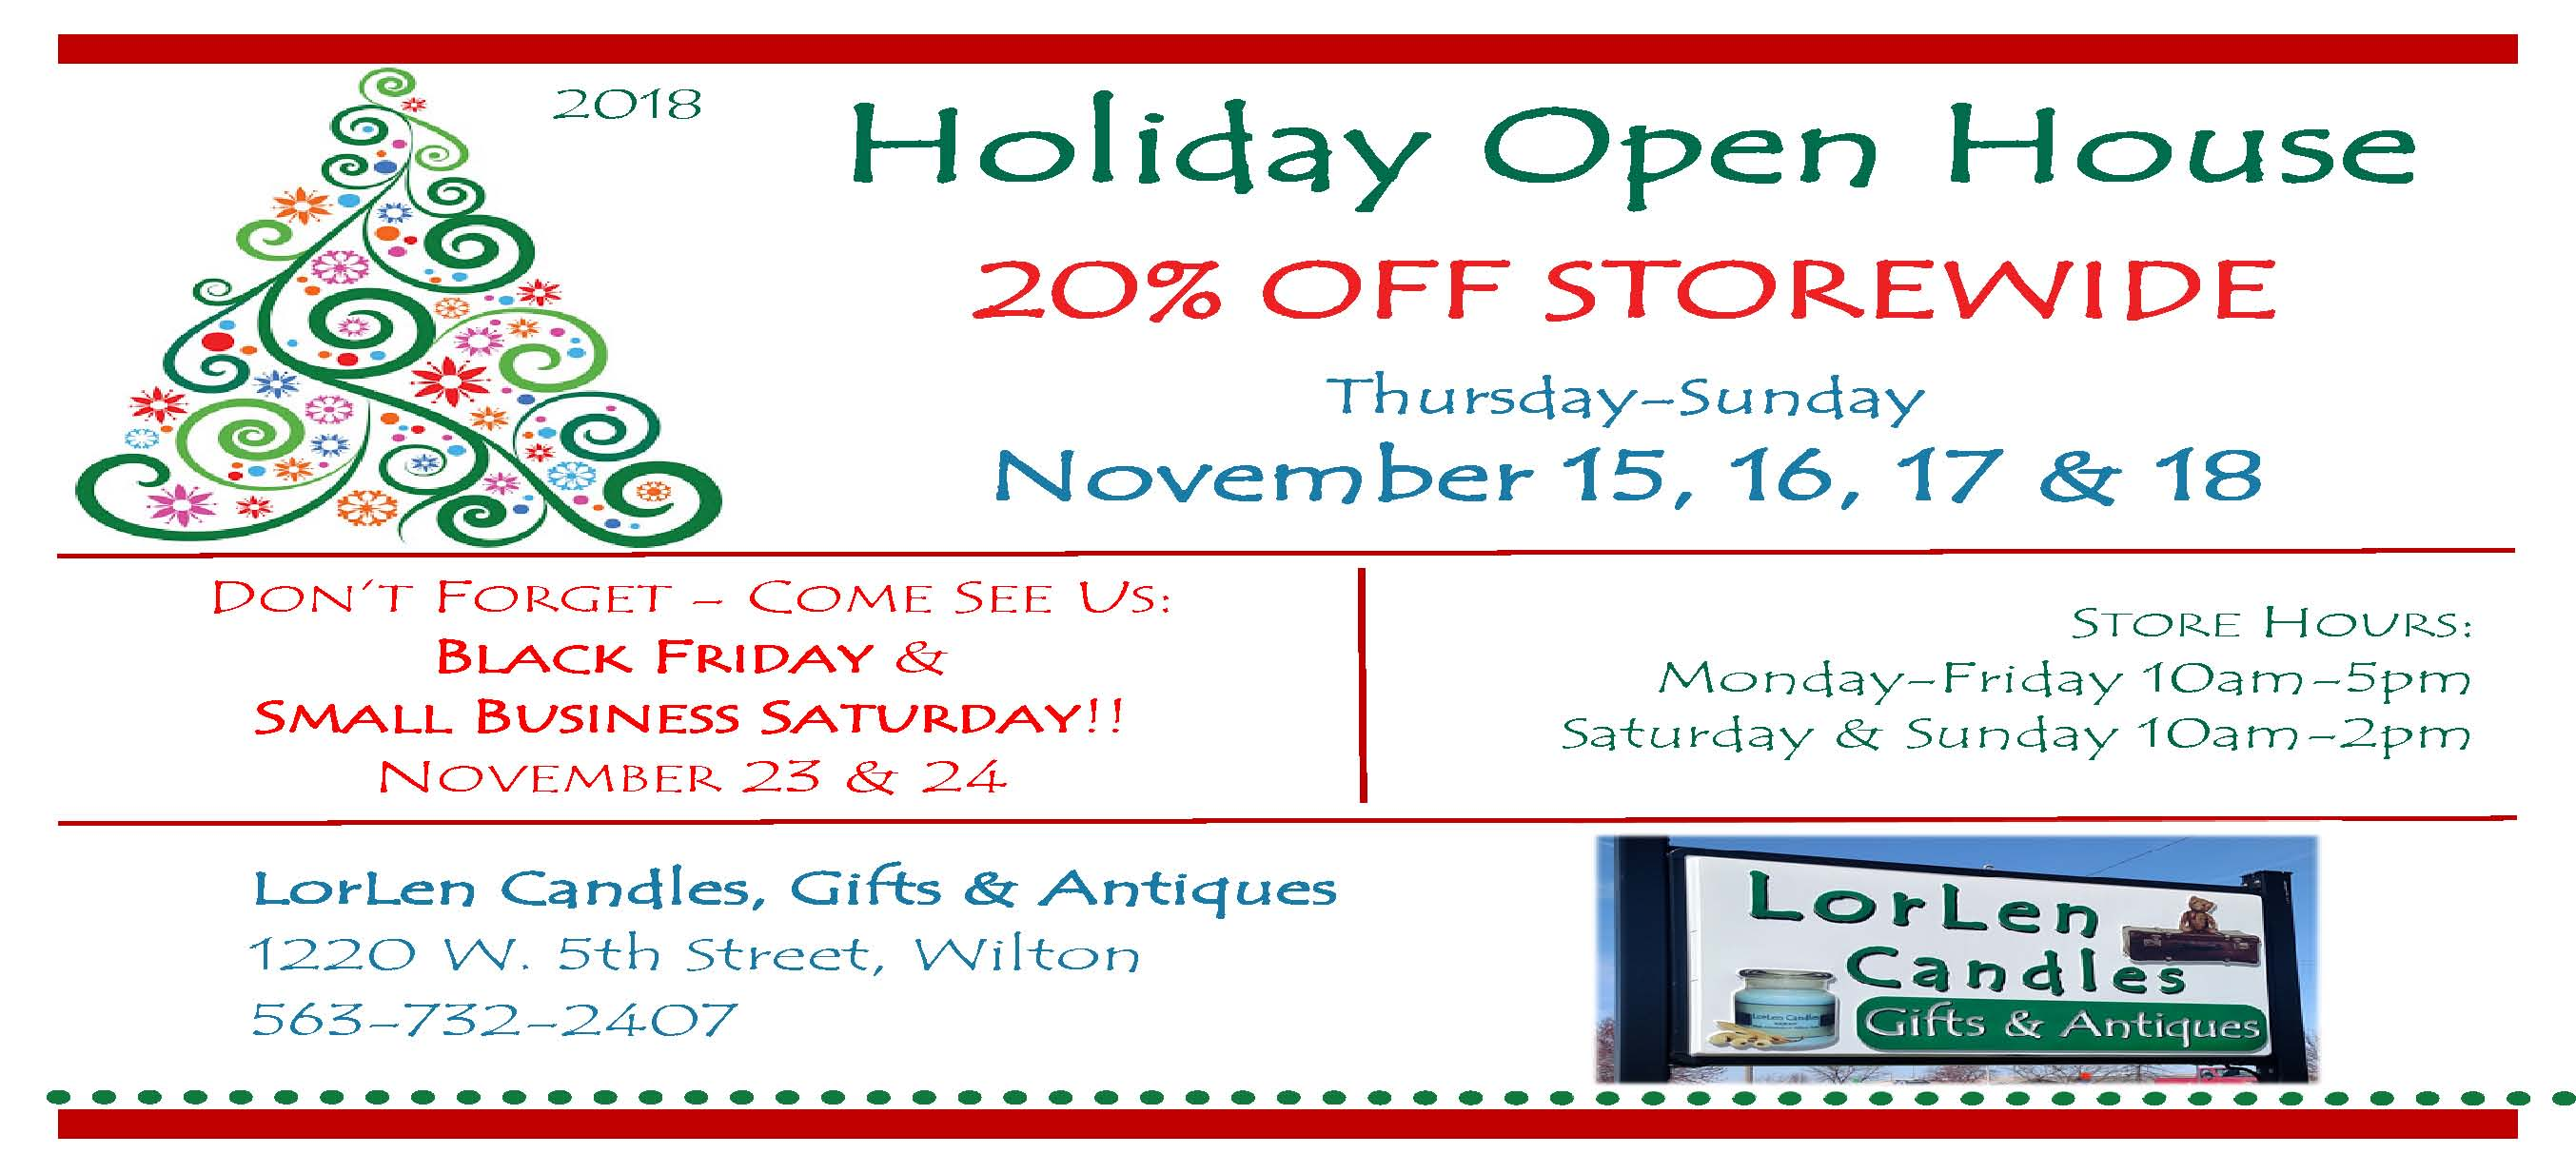 LorLen Candles Holiday Open House - Nov 15, 16, 17 & 18